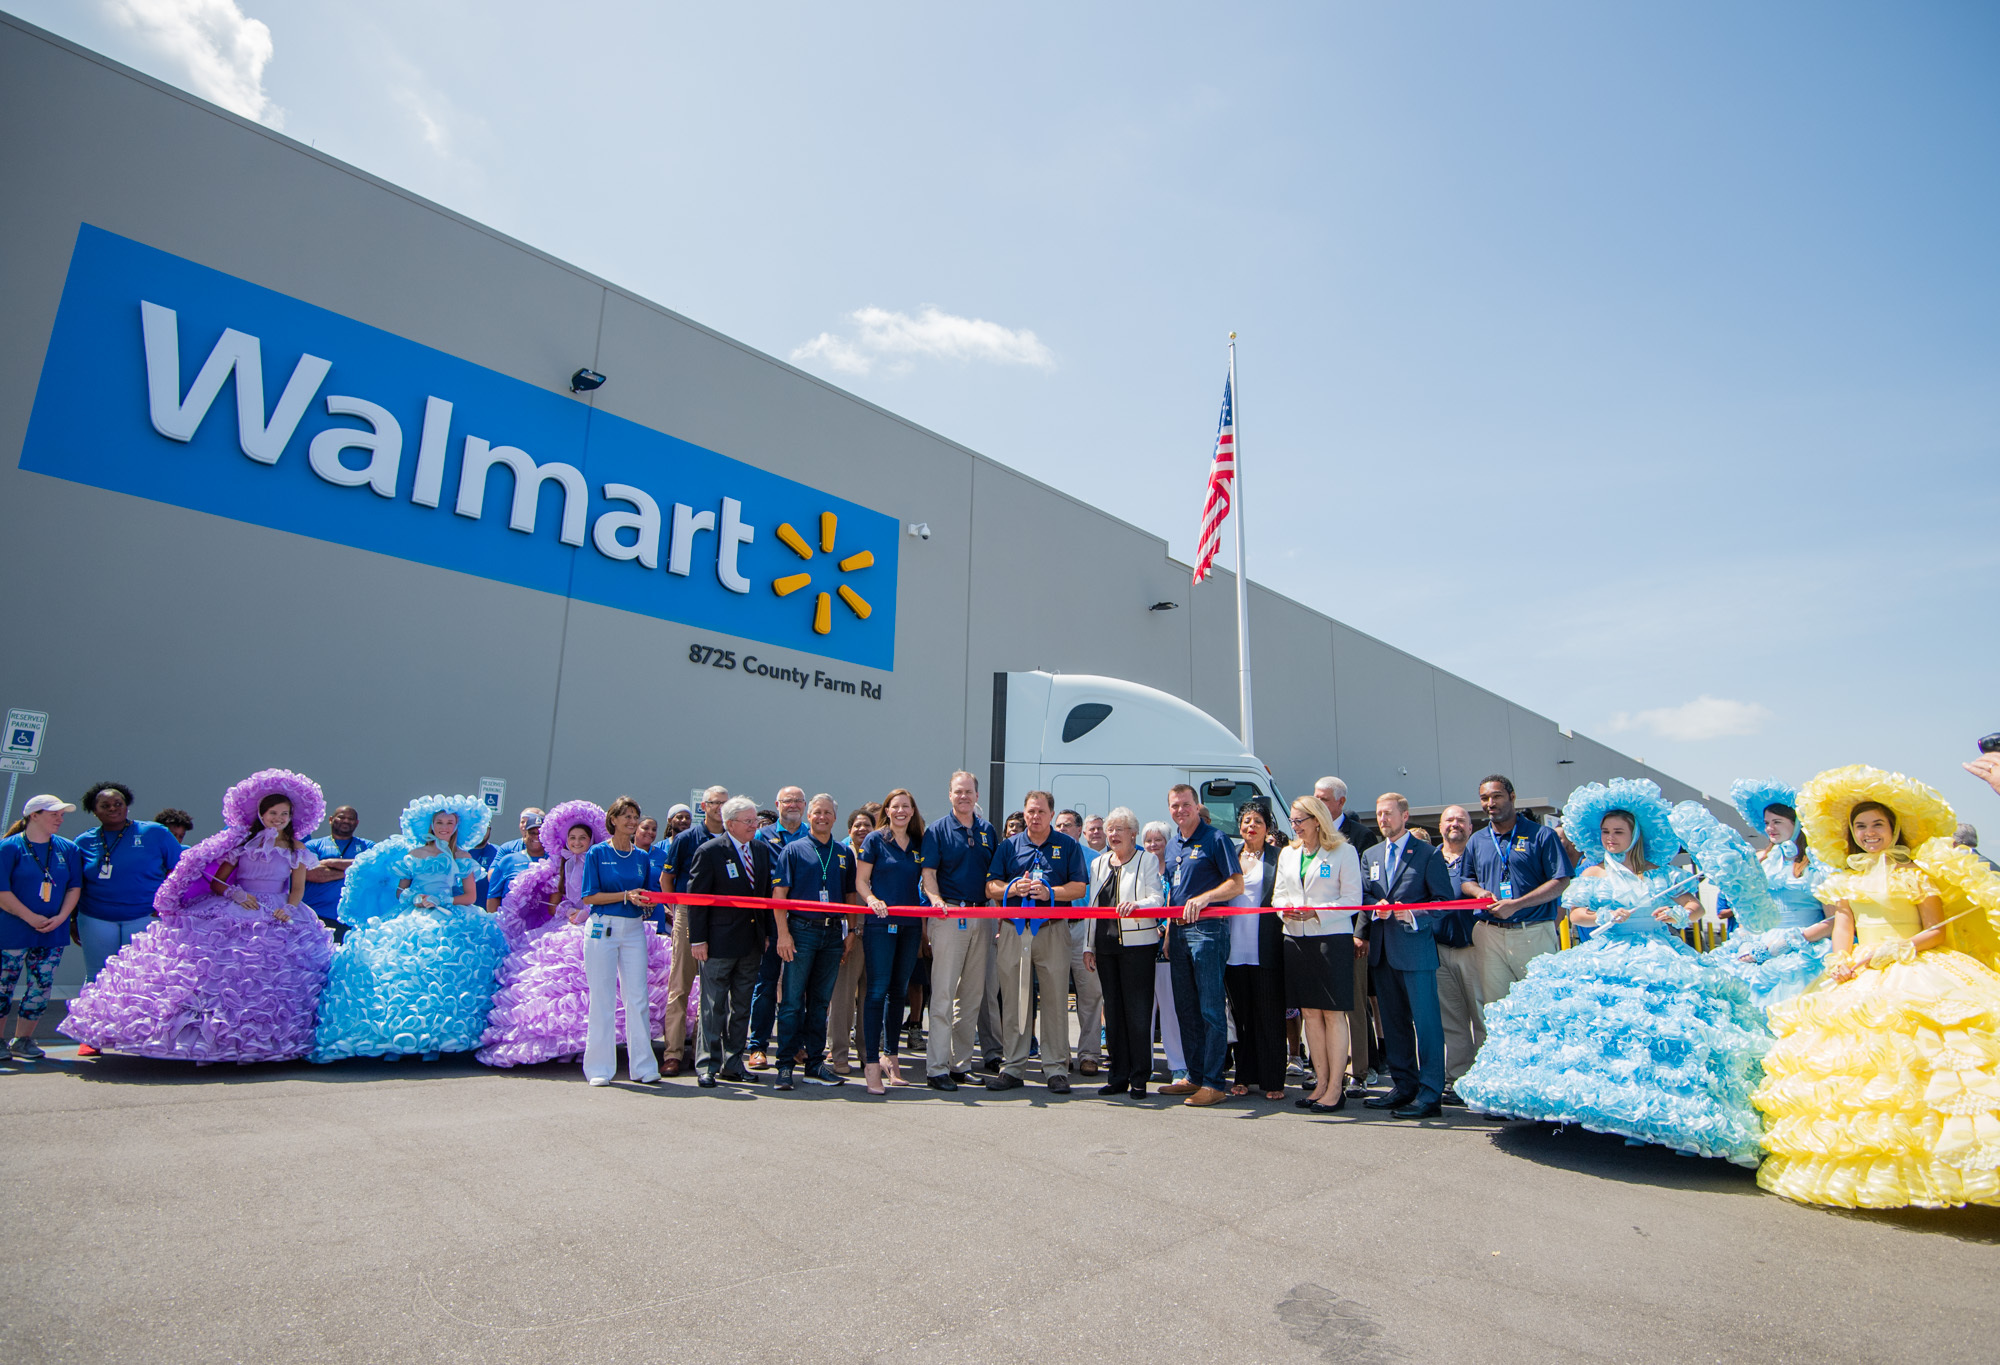 walmart opens new distribution center in mobile, al | business wire